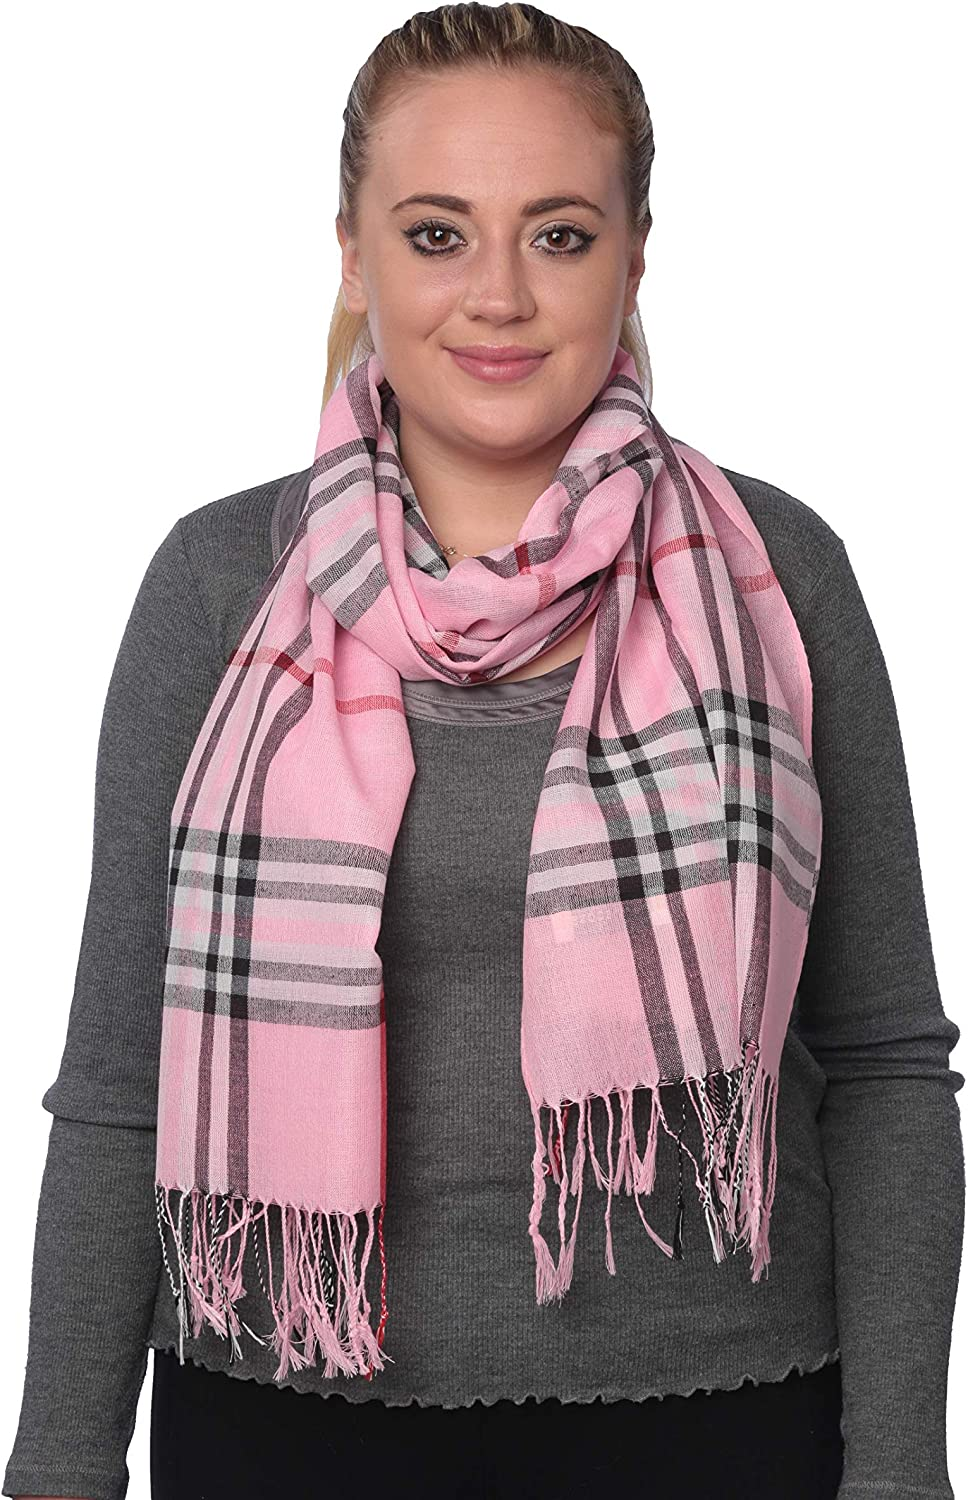 Scarfs for Women Long Large Scarf Fashion Scarves Lightweight Sunscreen Shawls Wraps Swimwear Beach Cover Up